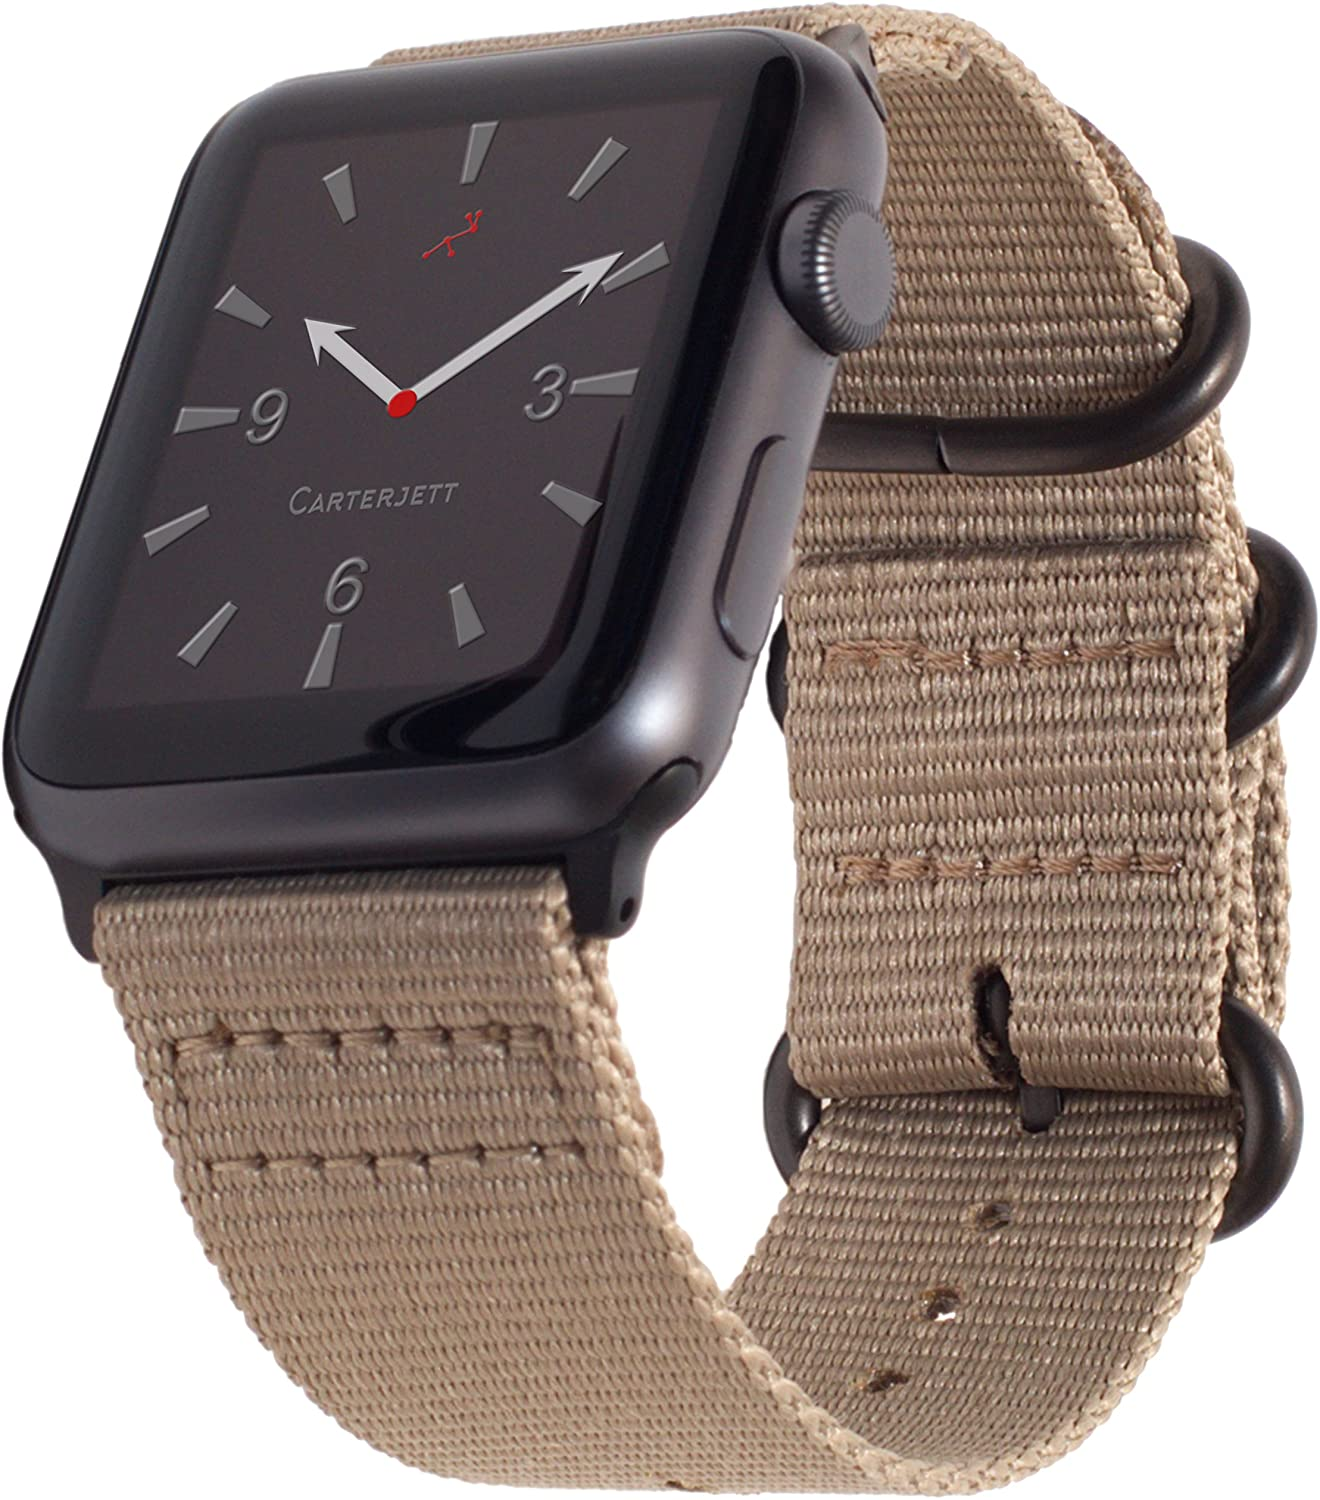 Carterjett Compatible with Apple Watch Band 38mm 40mm Desert Beige Nylon iWatch Bands Replacement Strap Men Women Gray Military Style Buckle Adapters Sport for Series 5 4 Series 3 2 1(38 40 S/ML Tan)